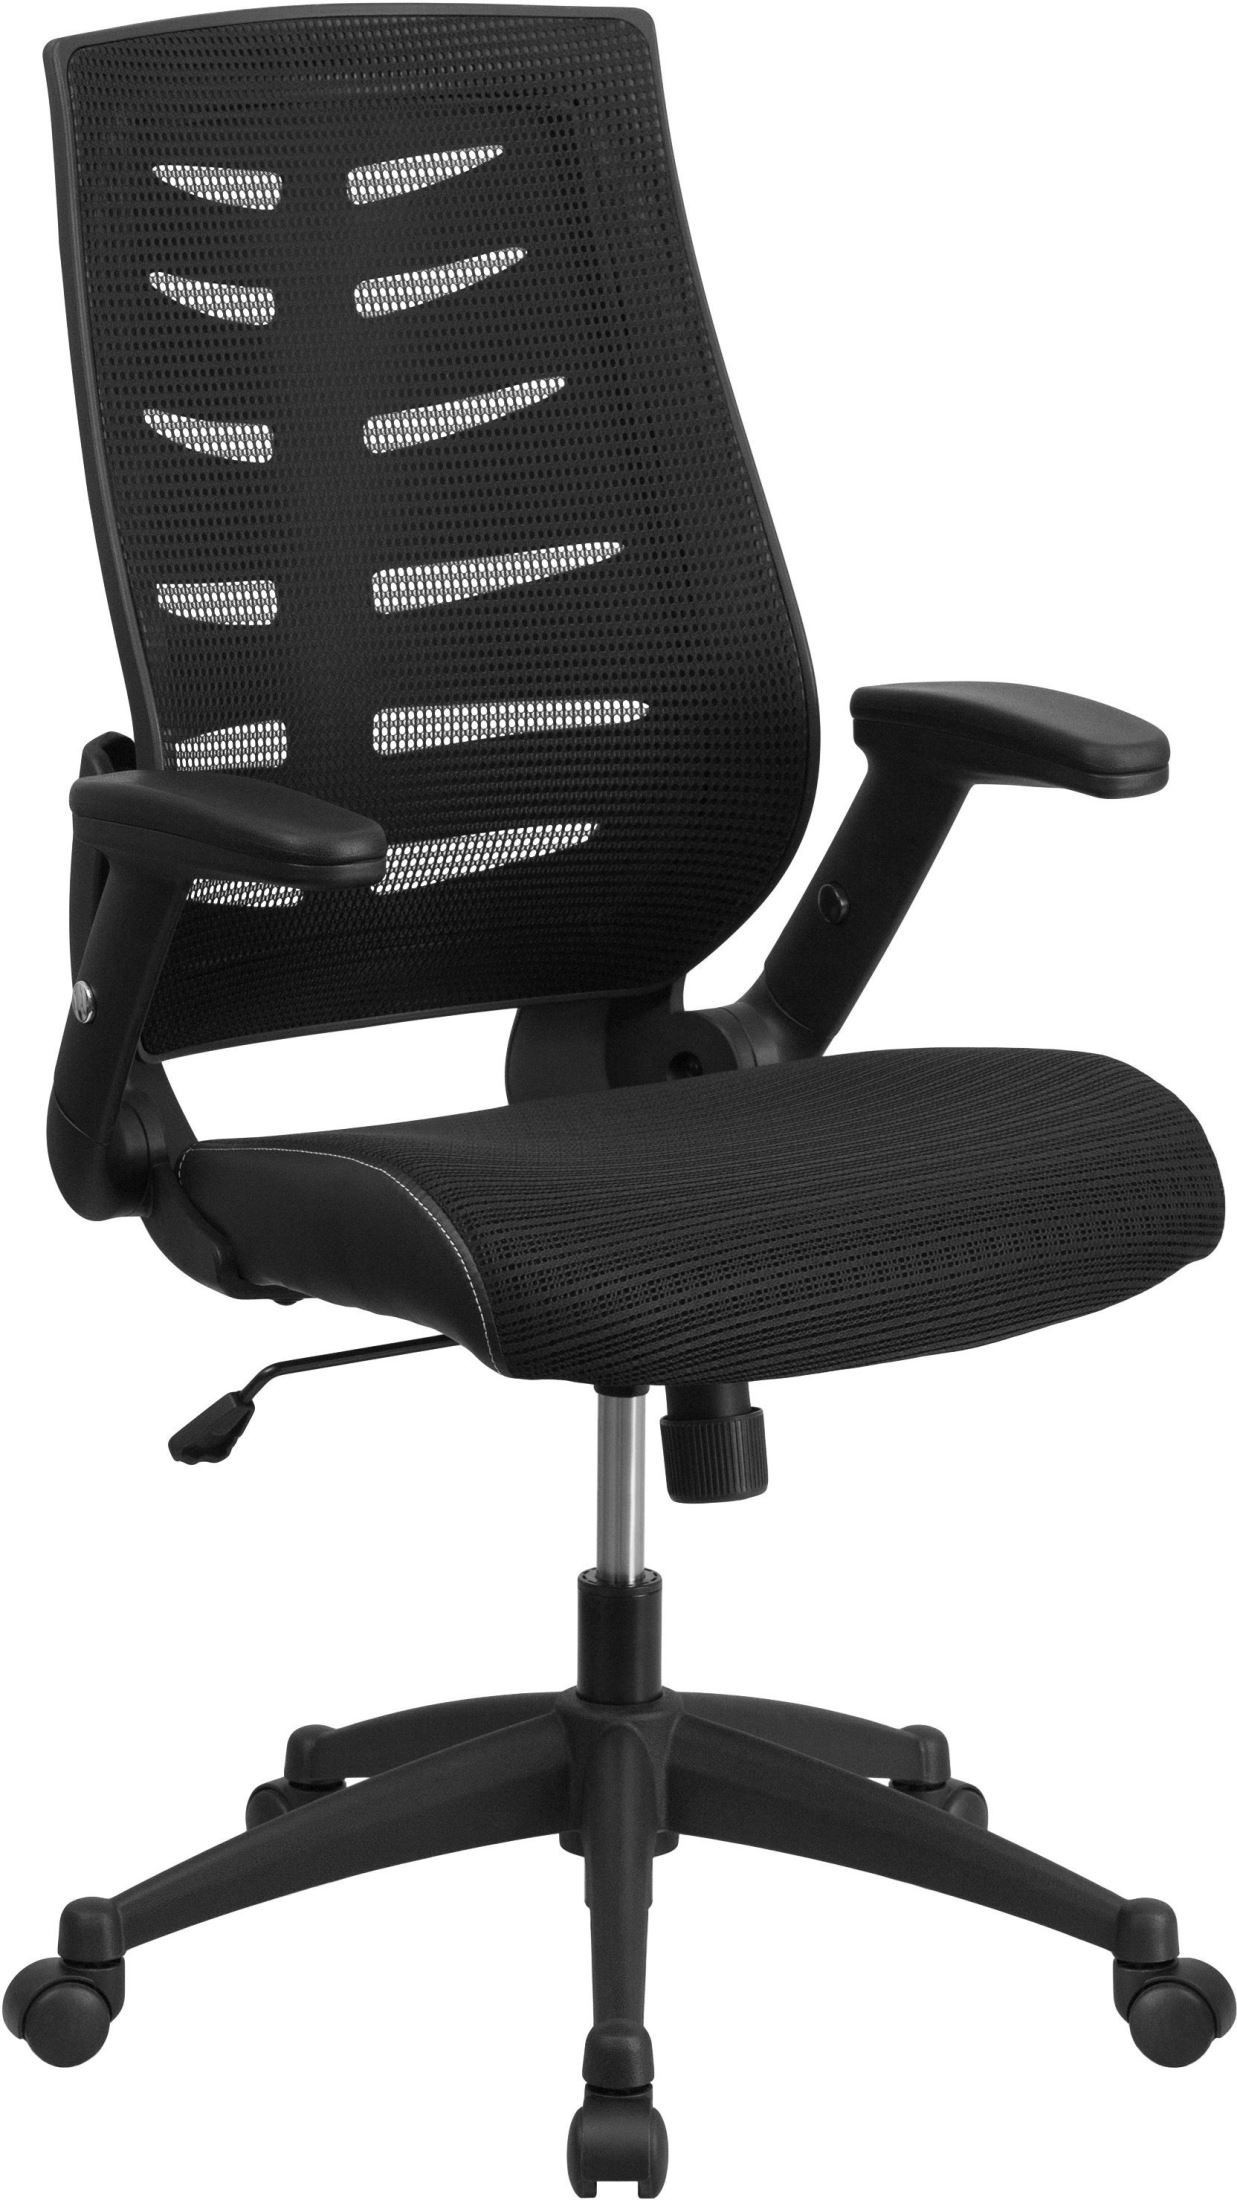 Adjustable High Chair High Back Black Executive Adjustable Swivel Office Chair